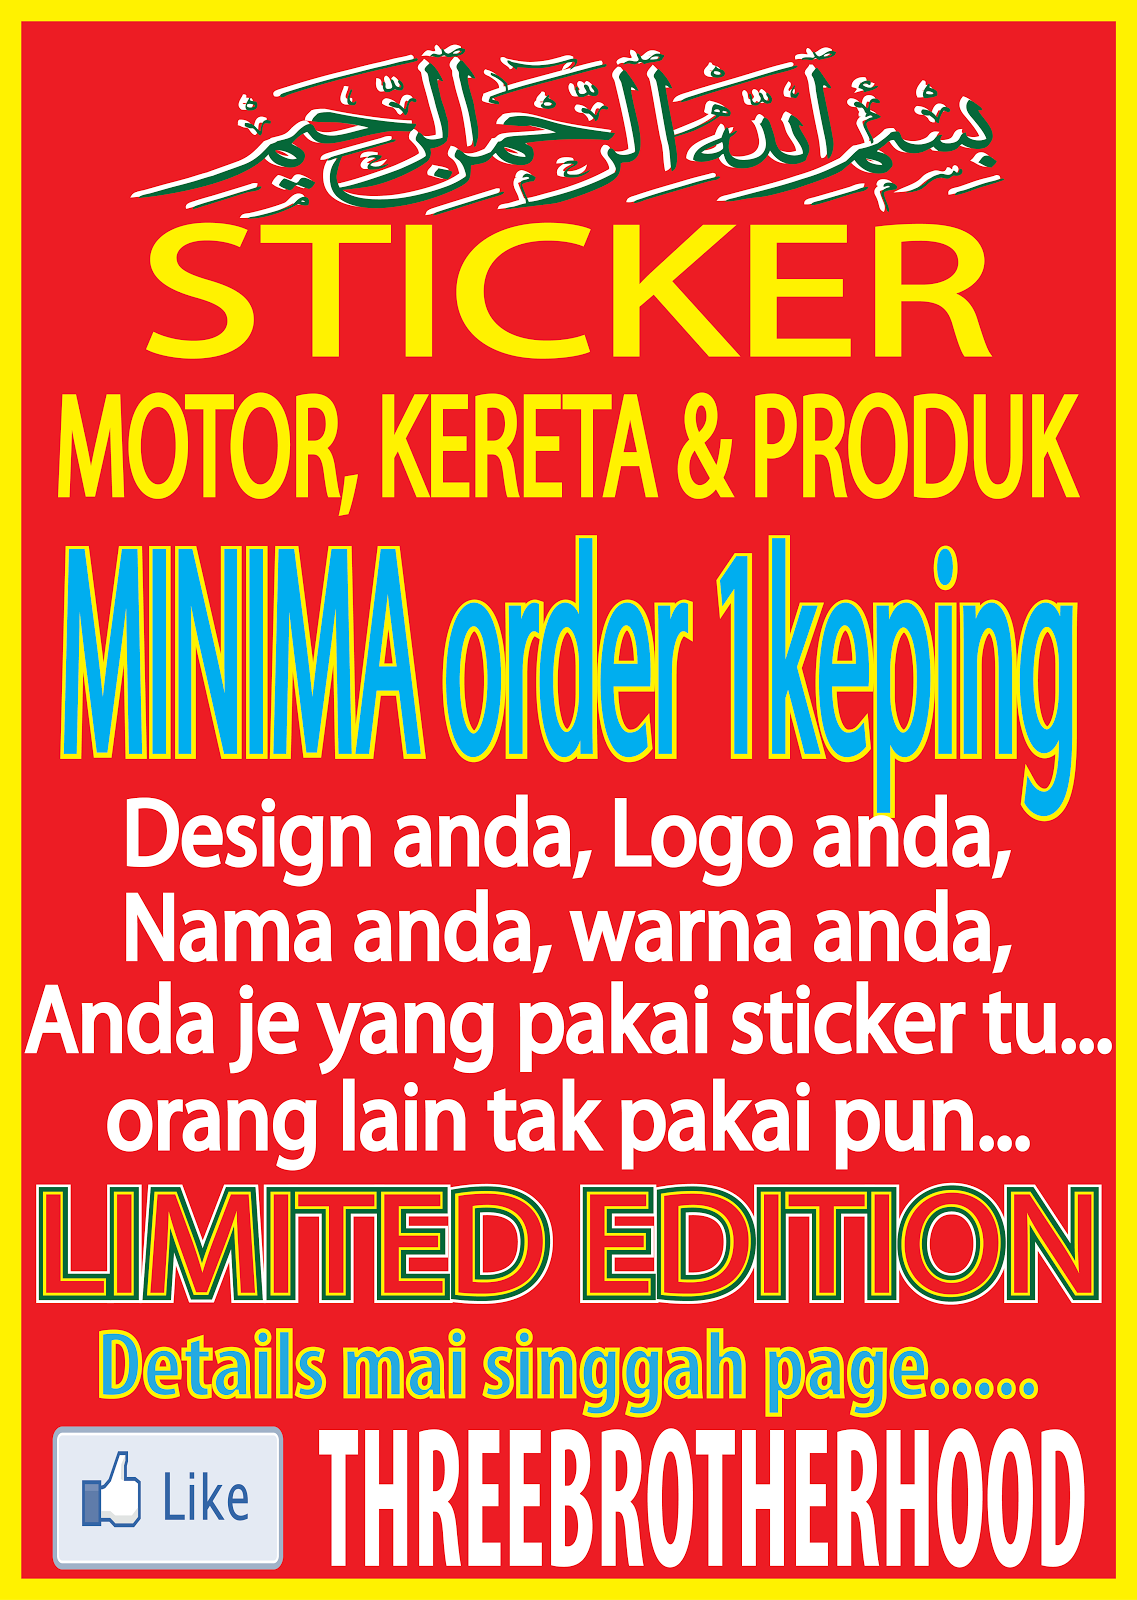 STICKER MINIMA 1pc